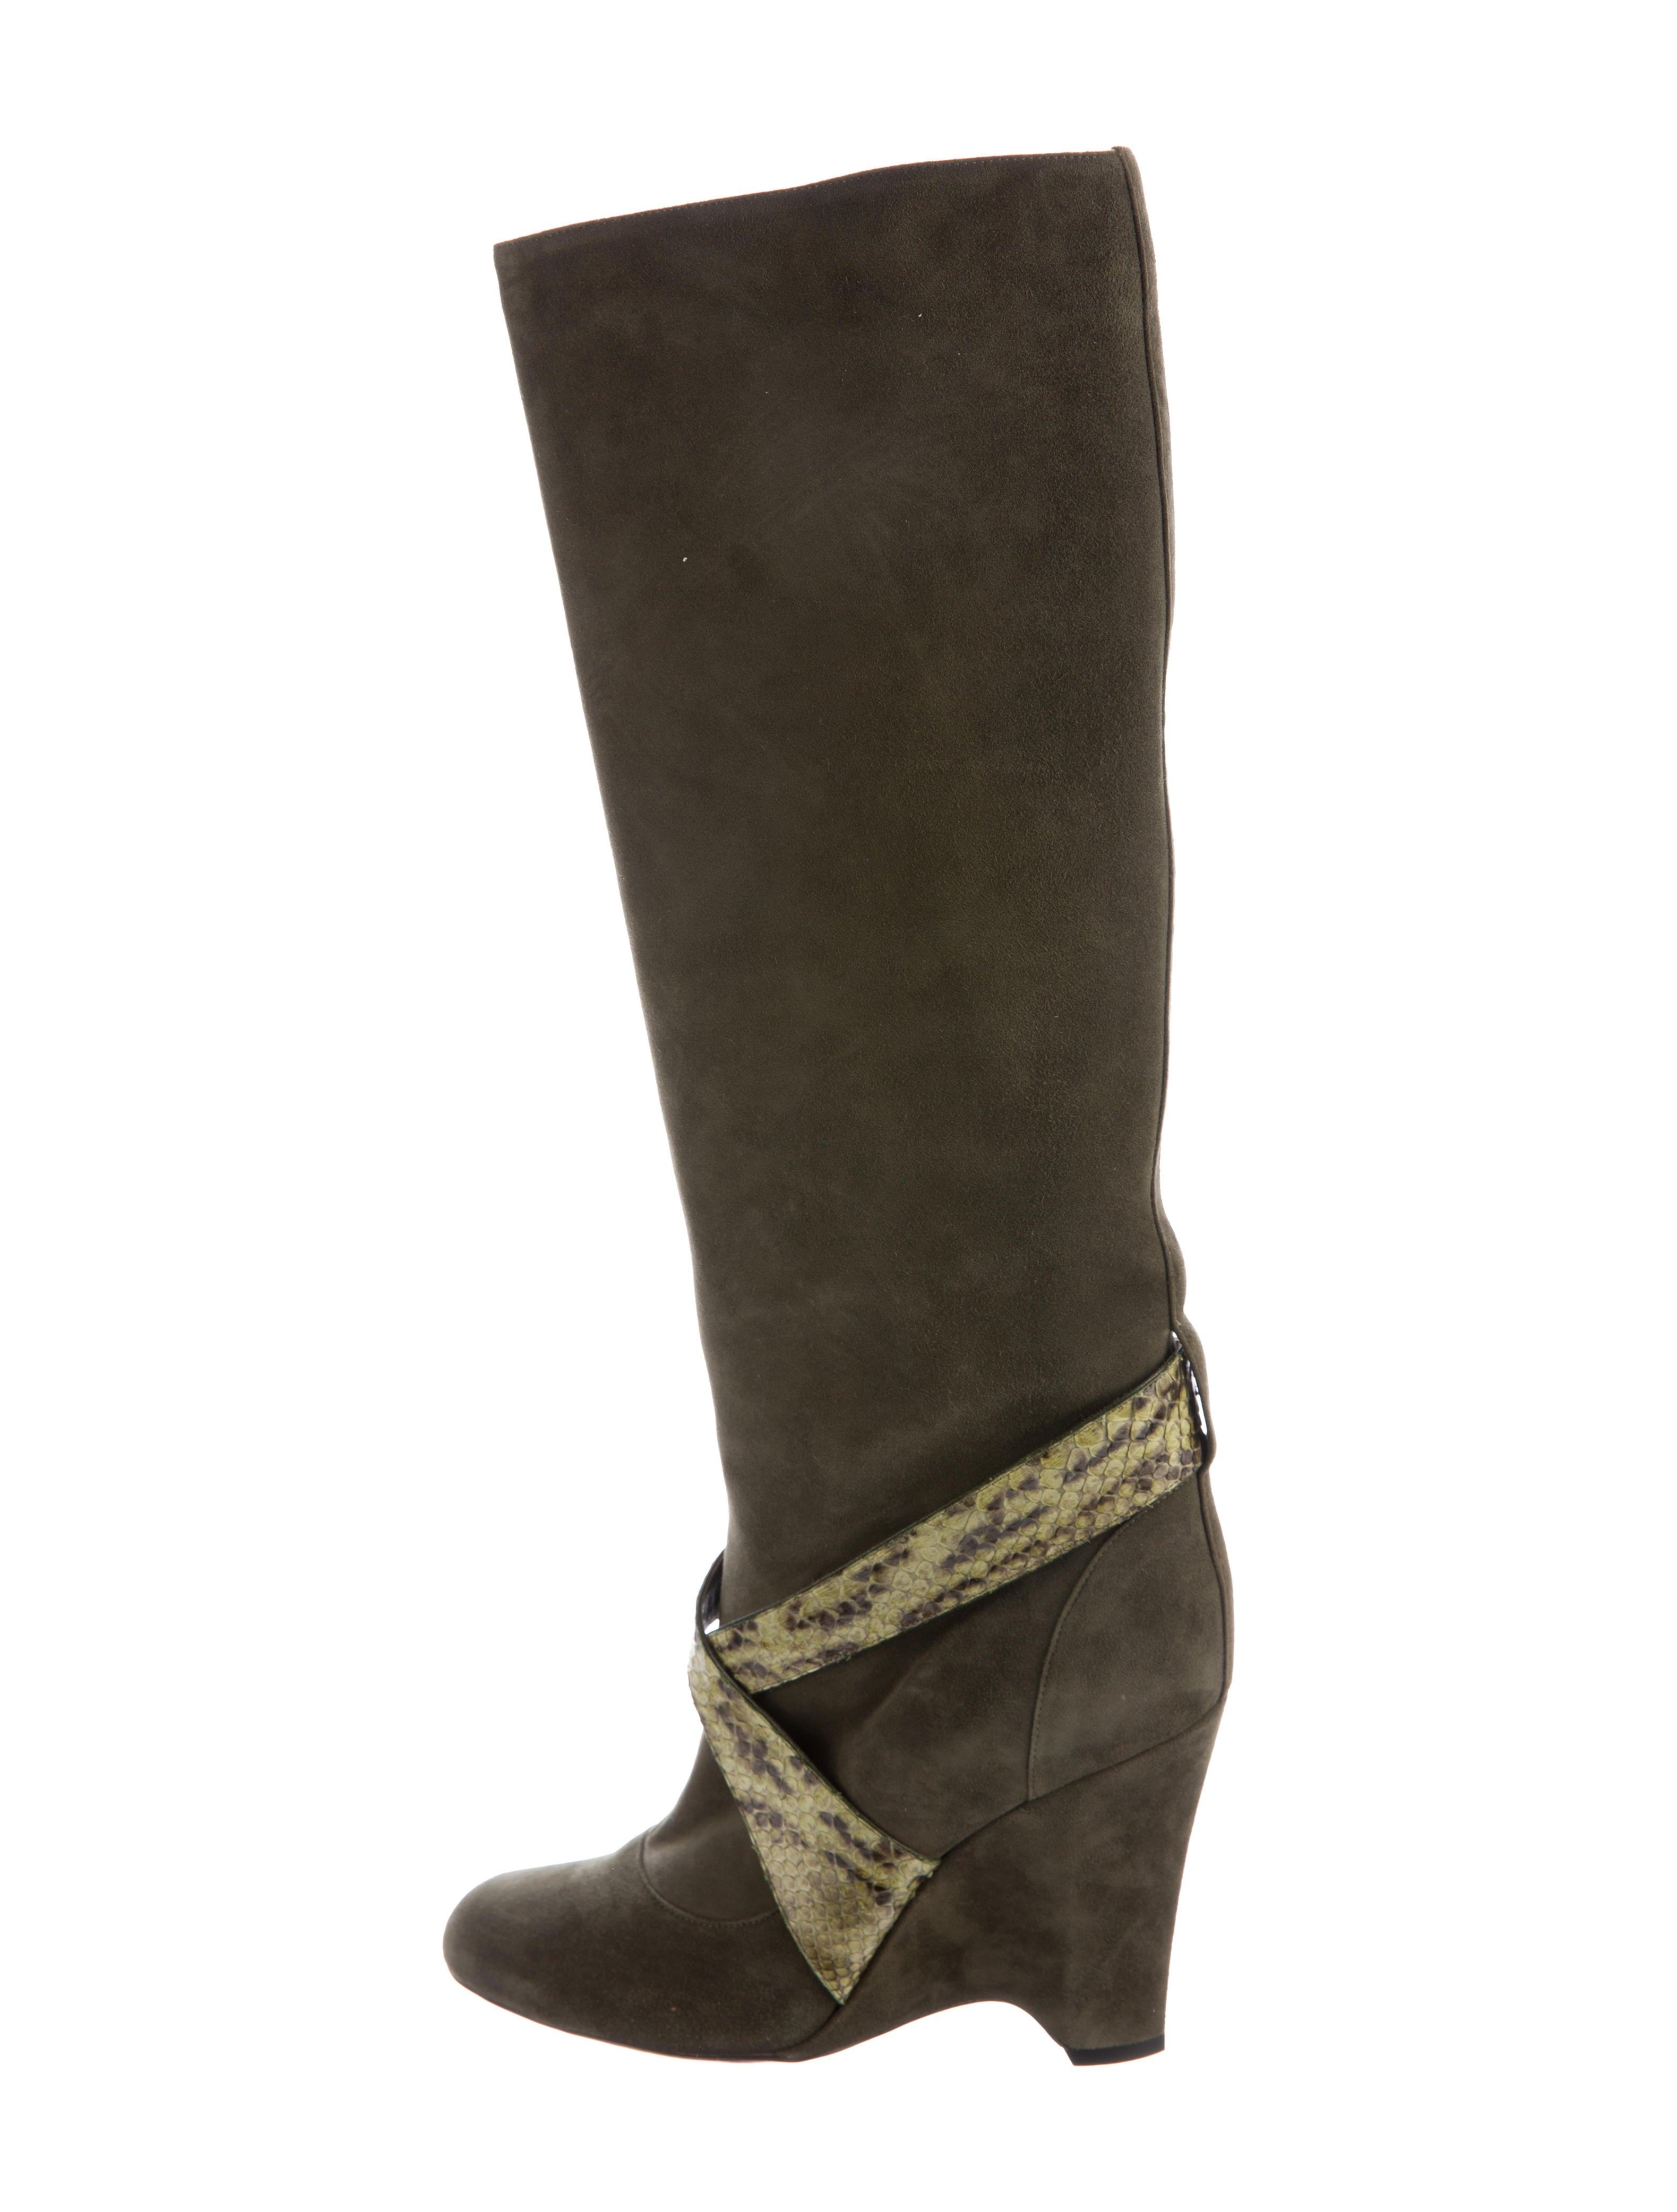 18, results for black wedge suede boots Save black wedge suede boots to get e-mail alerts and updates on your eBay Feed. Unfollow black wedge suede boots to .